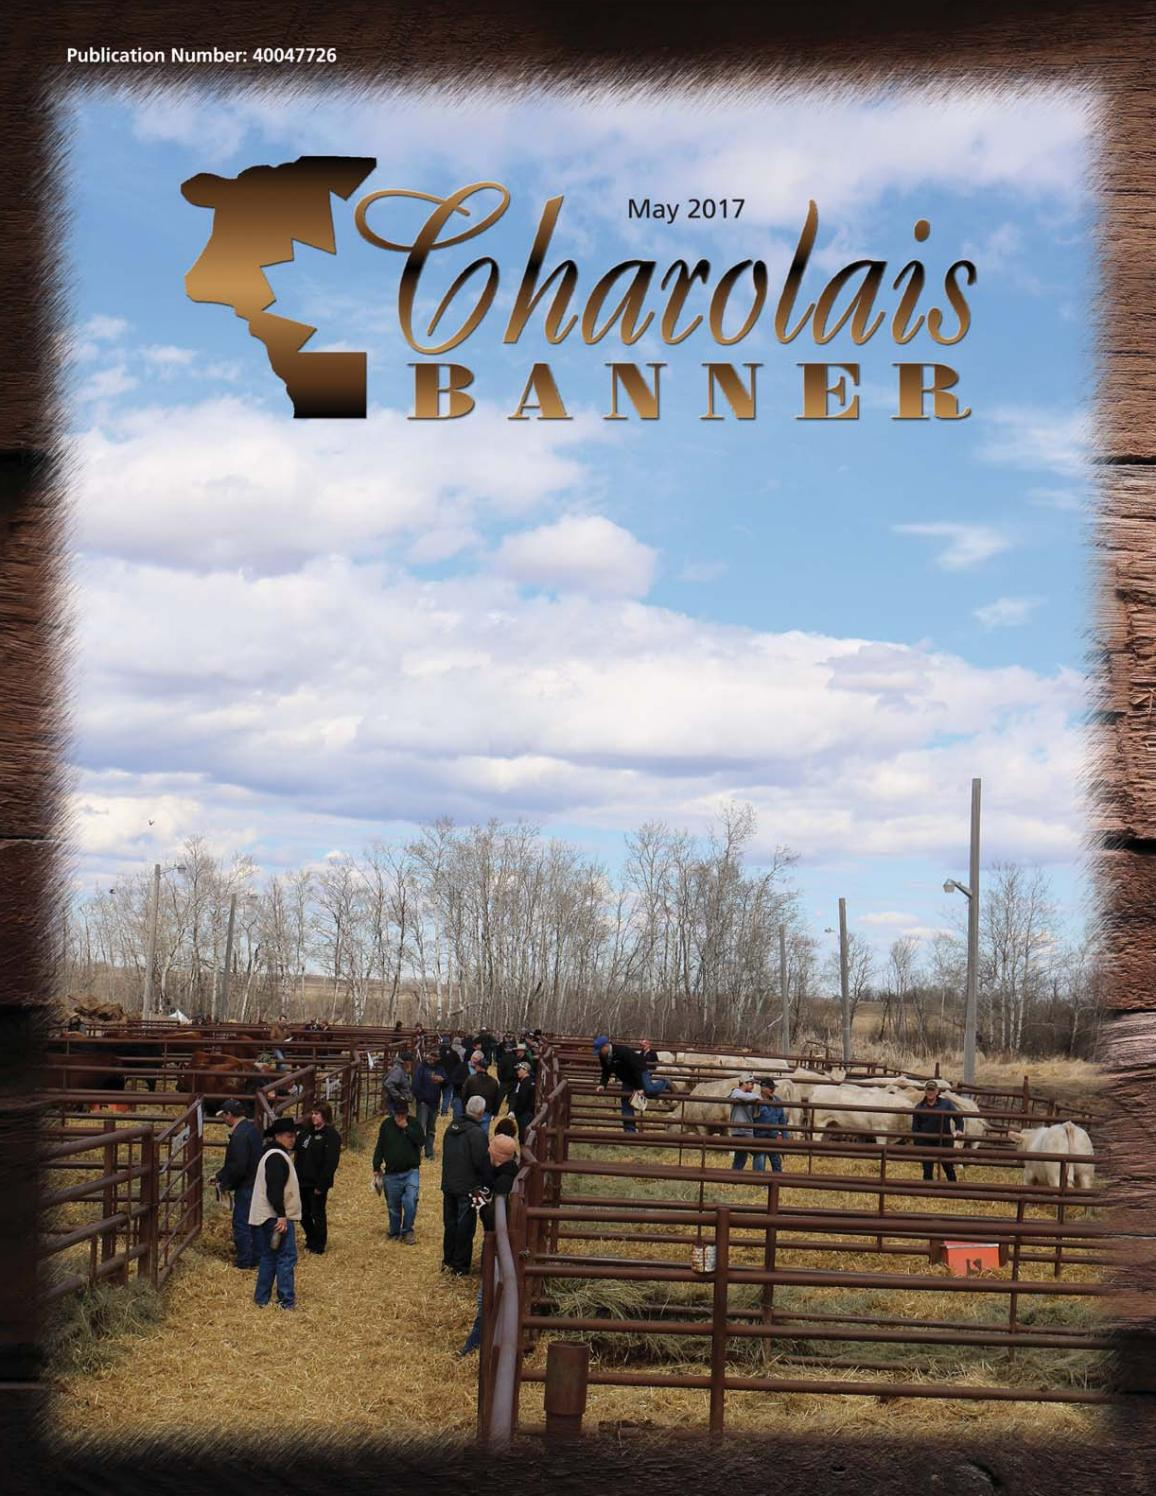 May 2017 charolais banner web by Charolais Banner - issuu